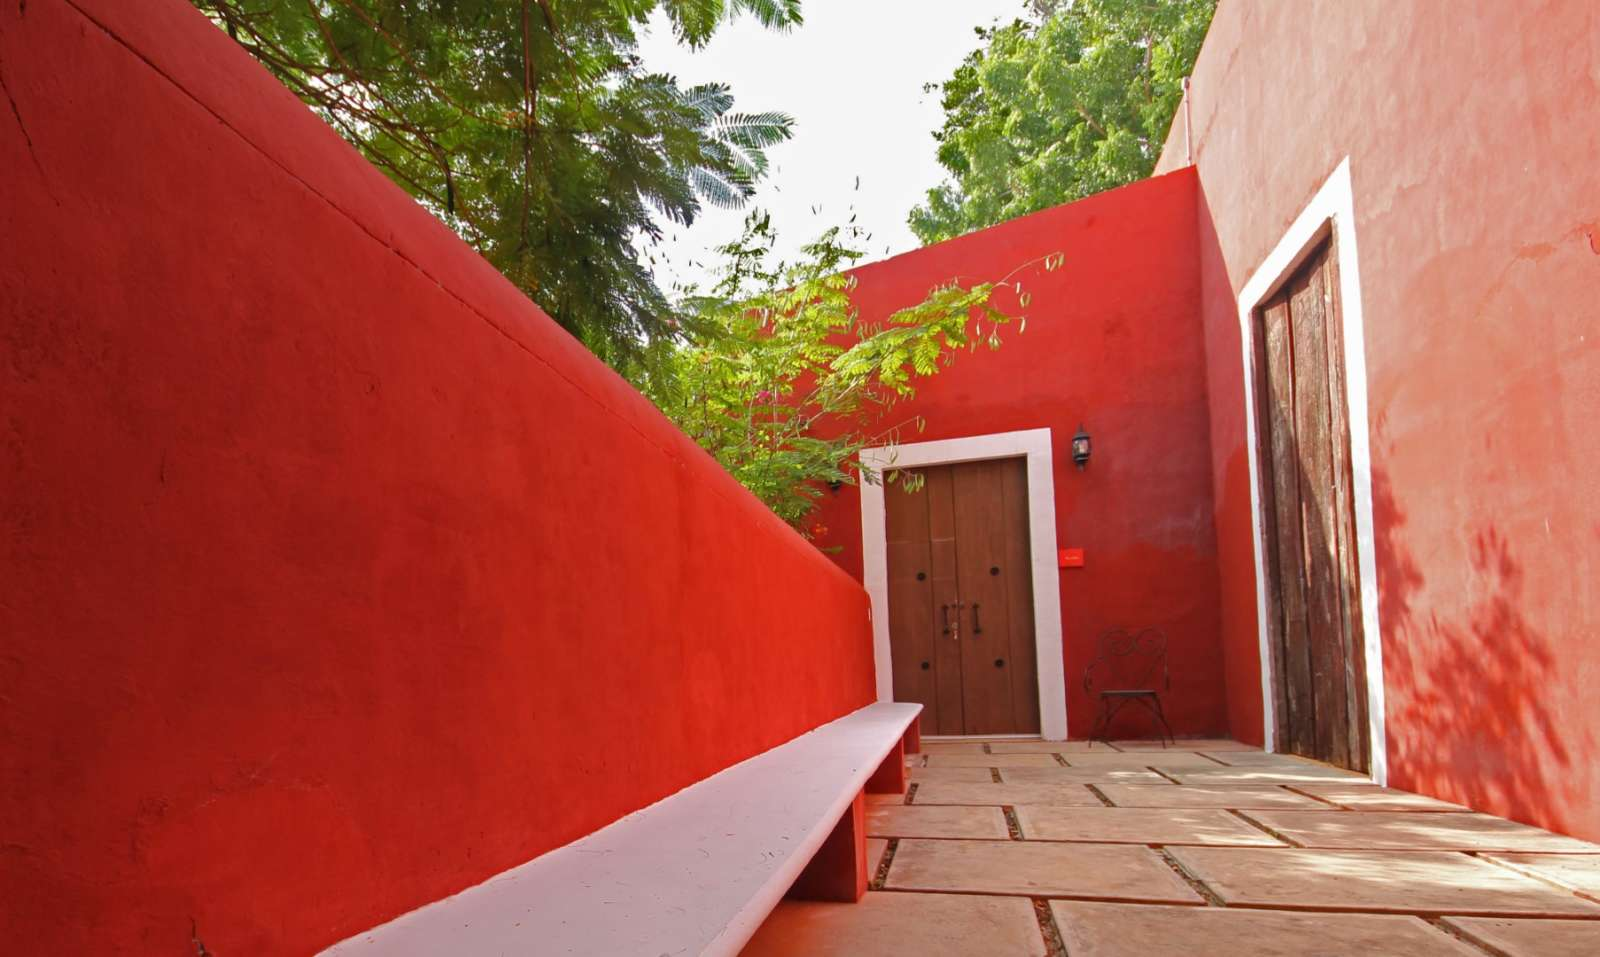 Red wall at Hacienda Santa Cruz